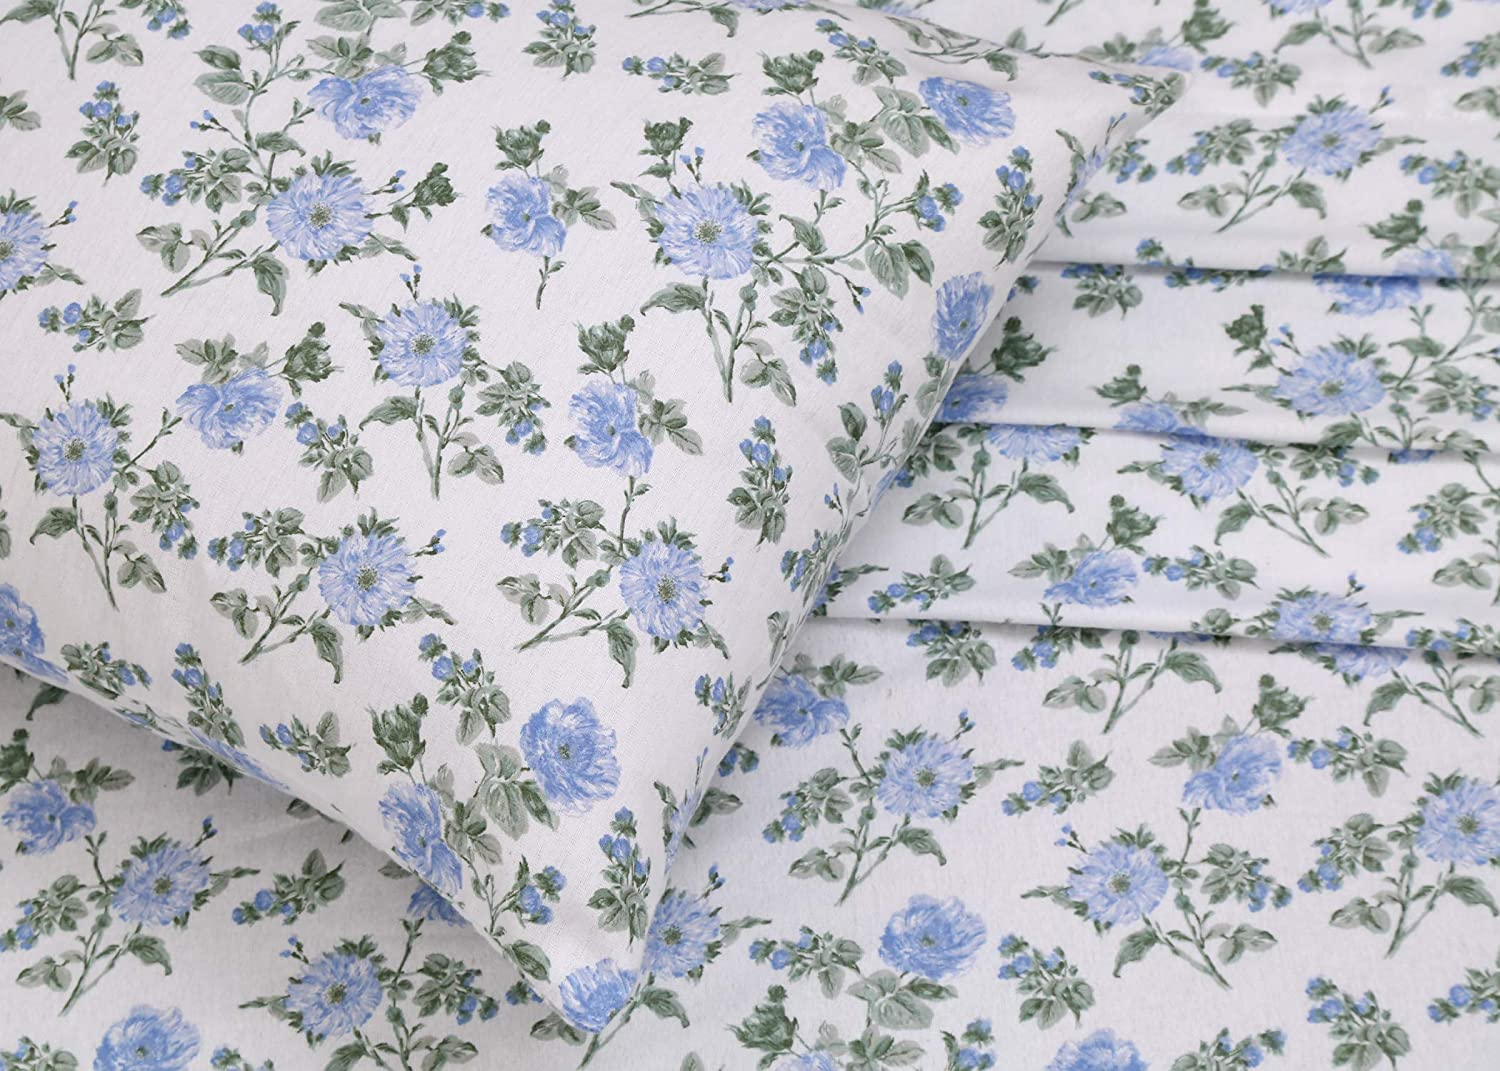 Warm Super Soft Breathable Moisture Wicking Flannel Bed Sheet Set Full Include Flat Sheet Deep Pocket Fitted Sheet 2 Pillowcases Ruvanti 100 Cotton 4 Piece Flannel Sheets Full Floral Design Bedding Sheets